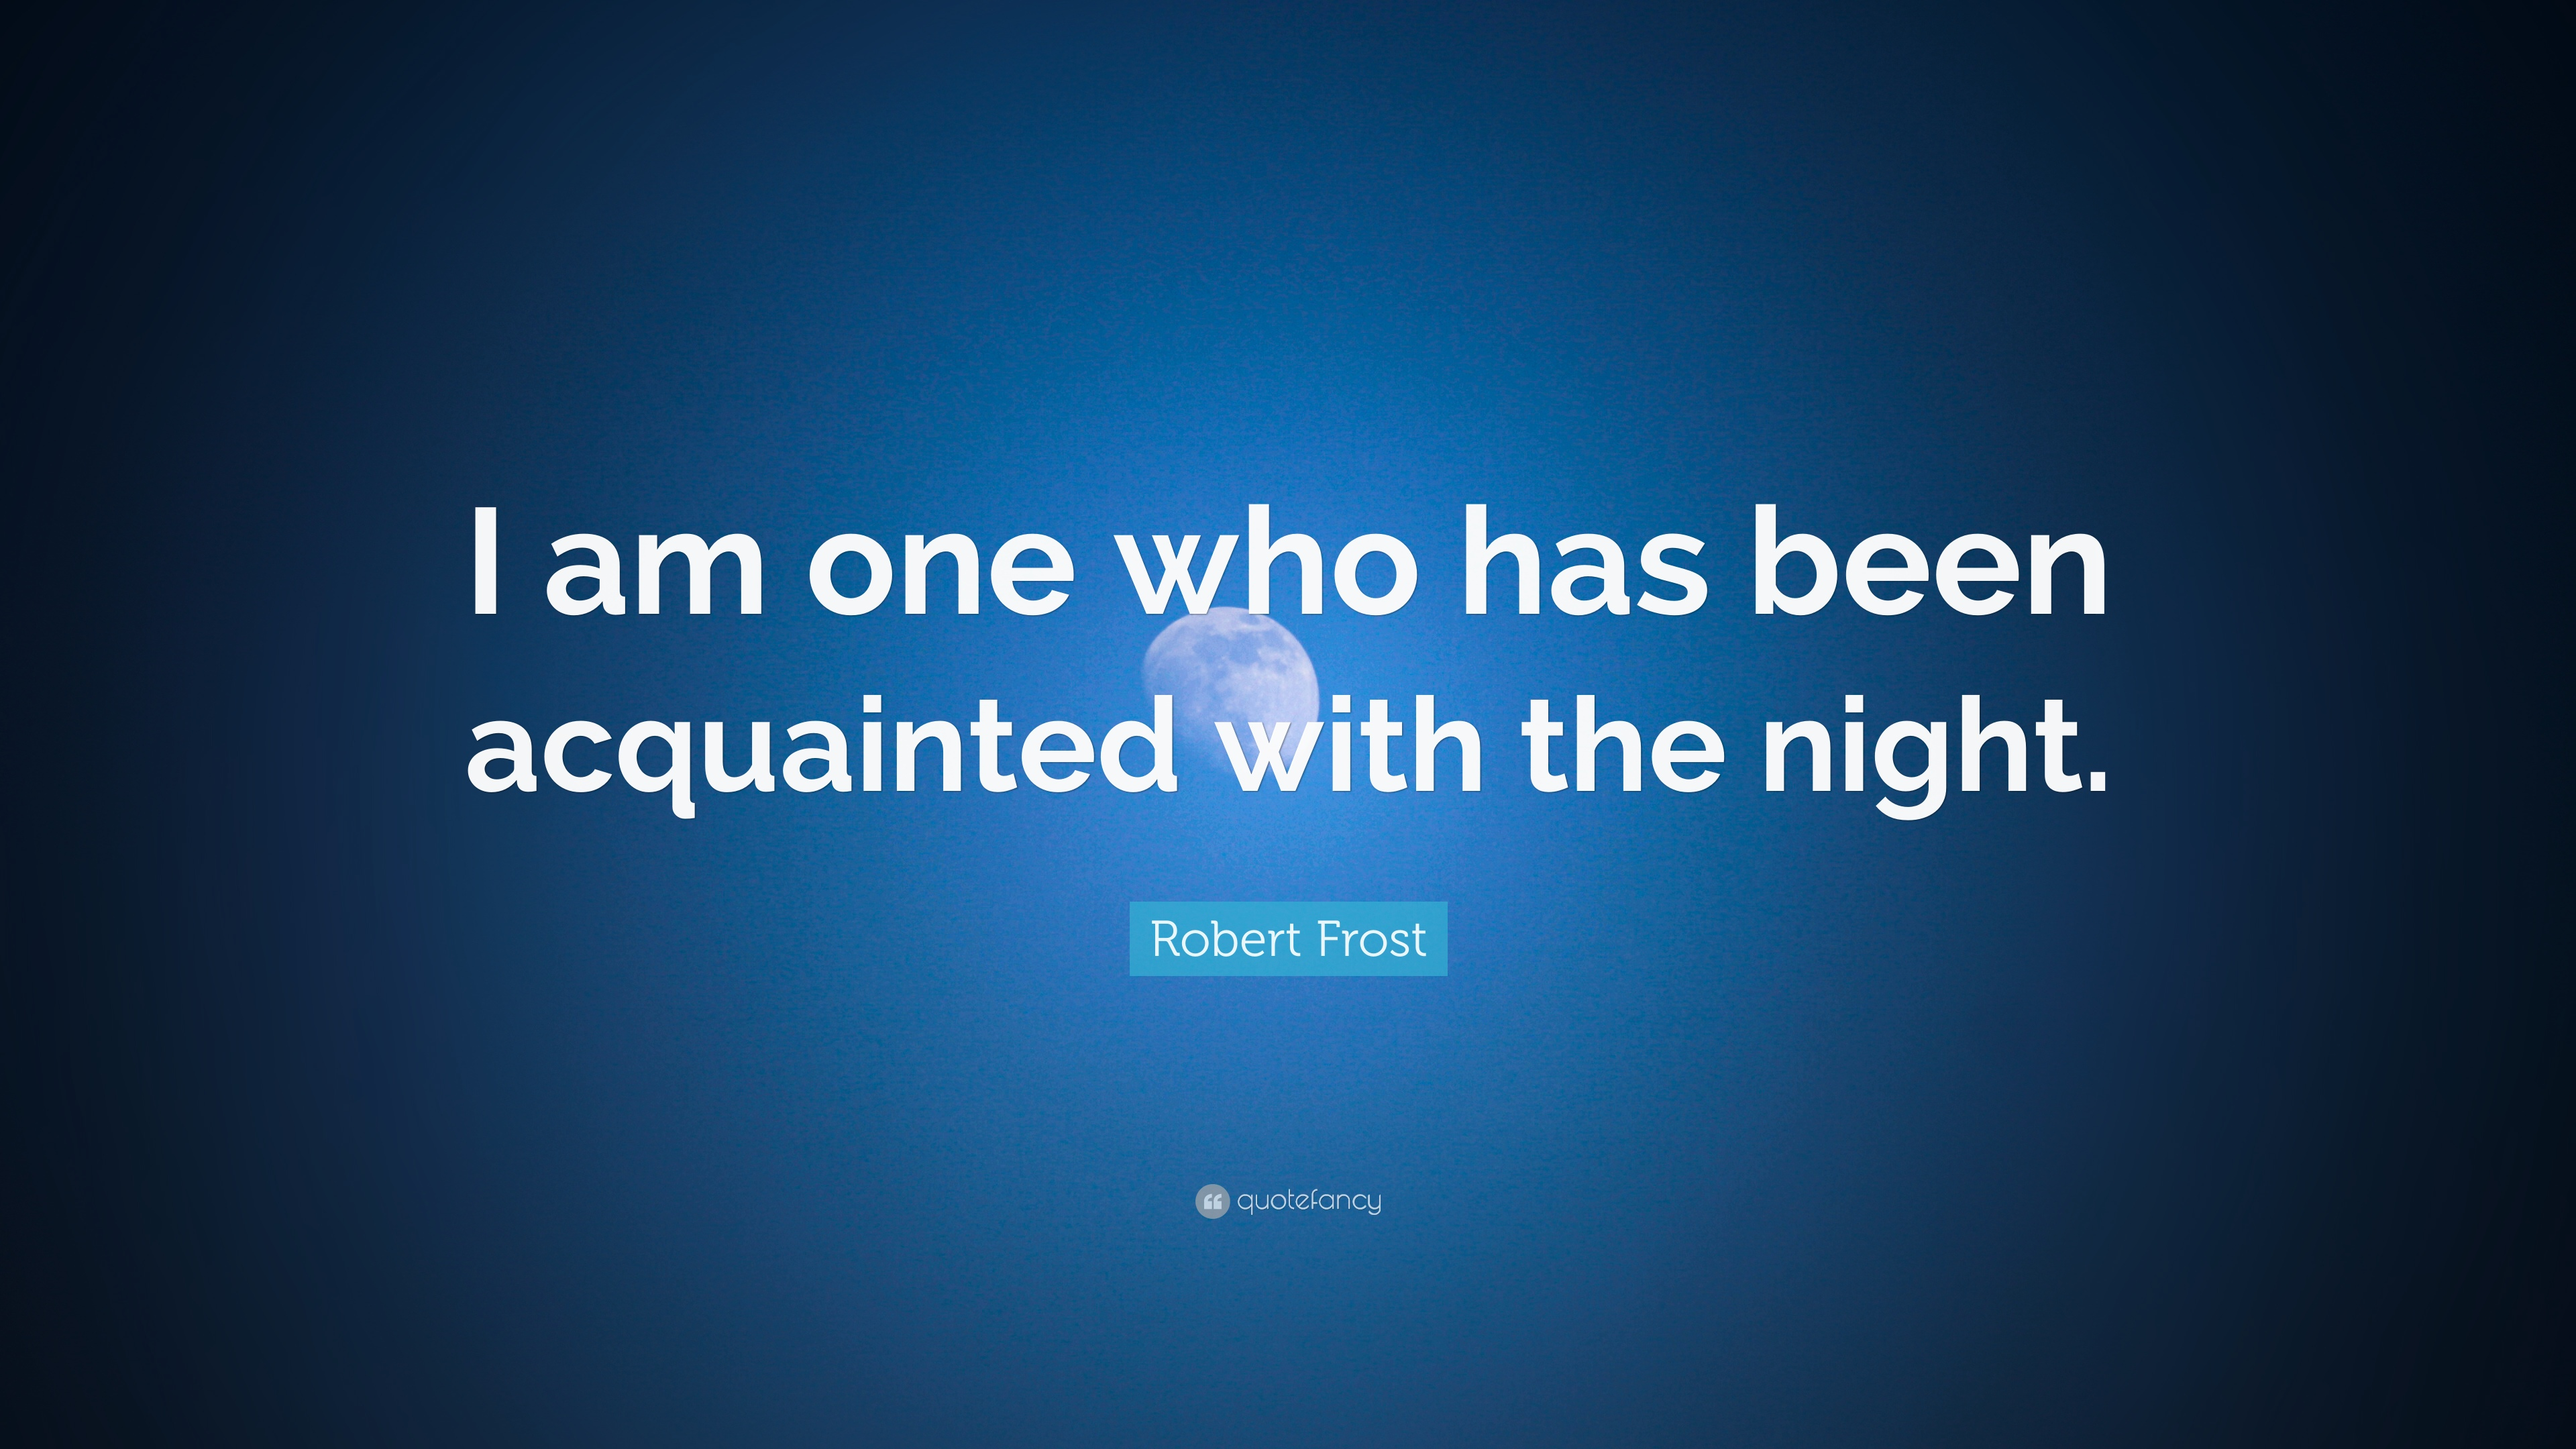 robert frost acquainted with the night analysis essay